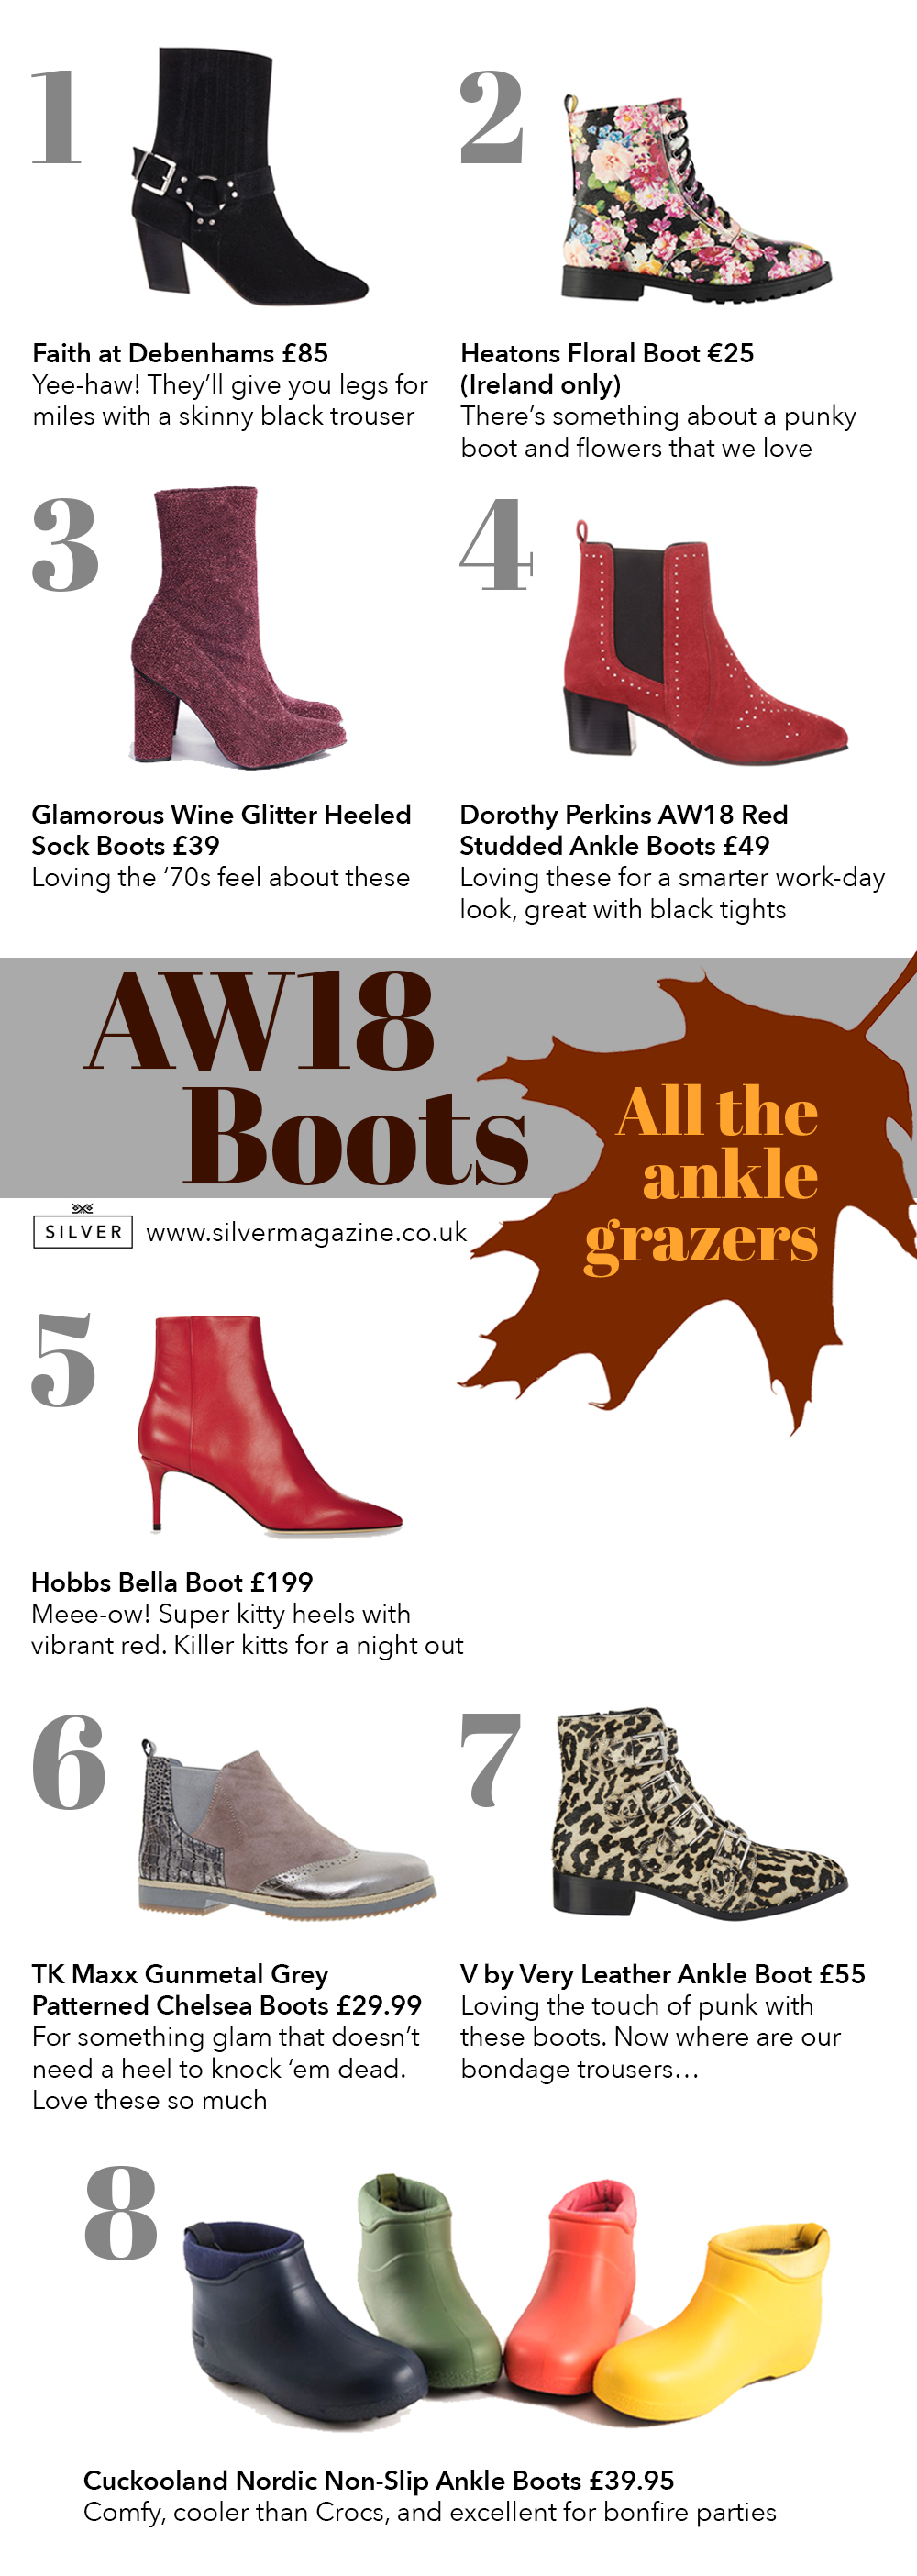 Boots Fashion Page Autumn boots AW18 Silver Magazine www.silvermagazine.co.uk